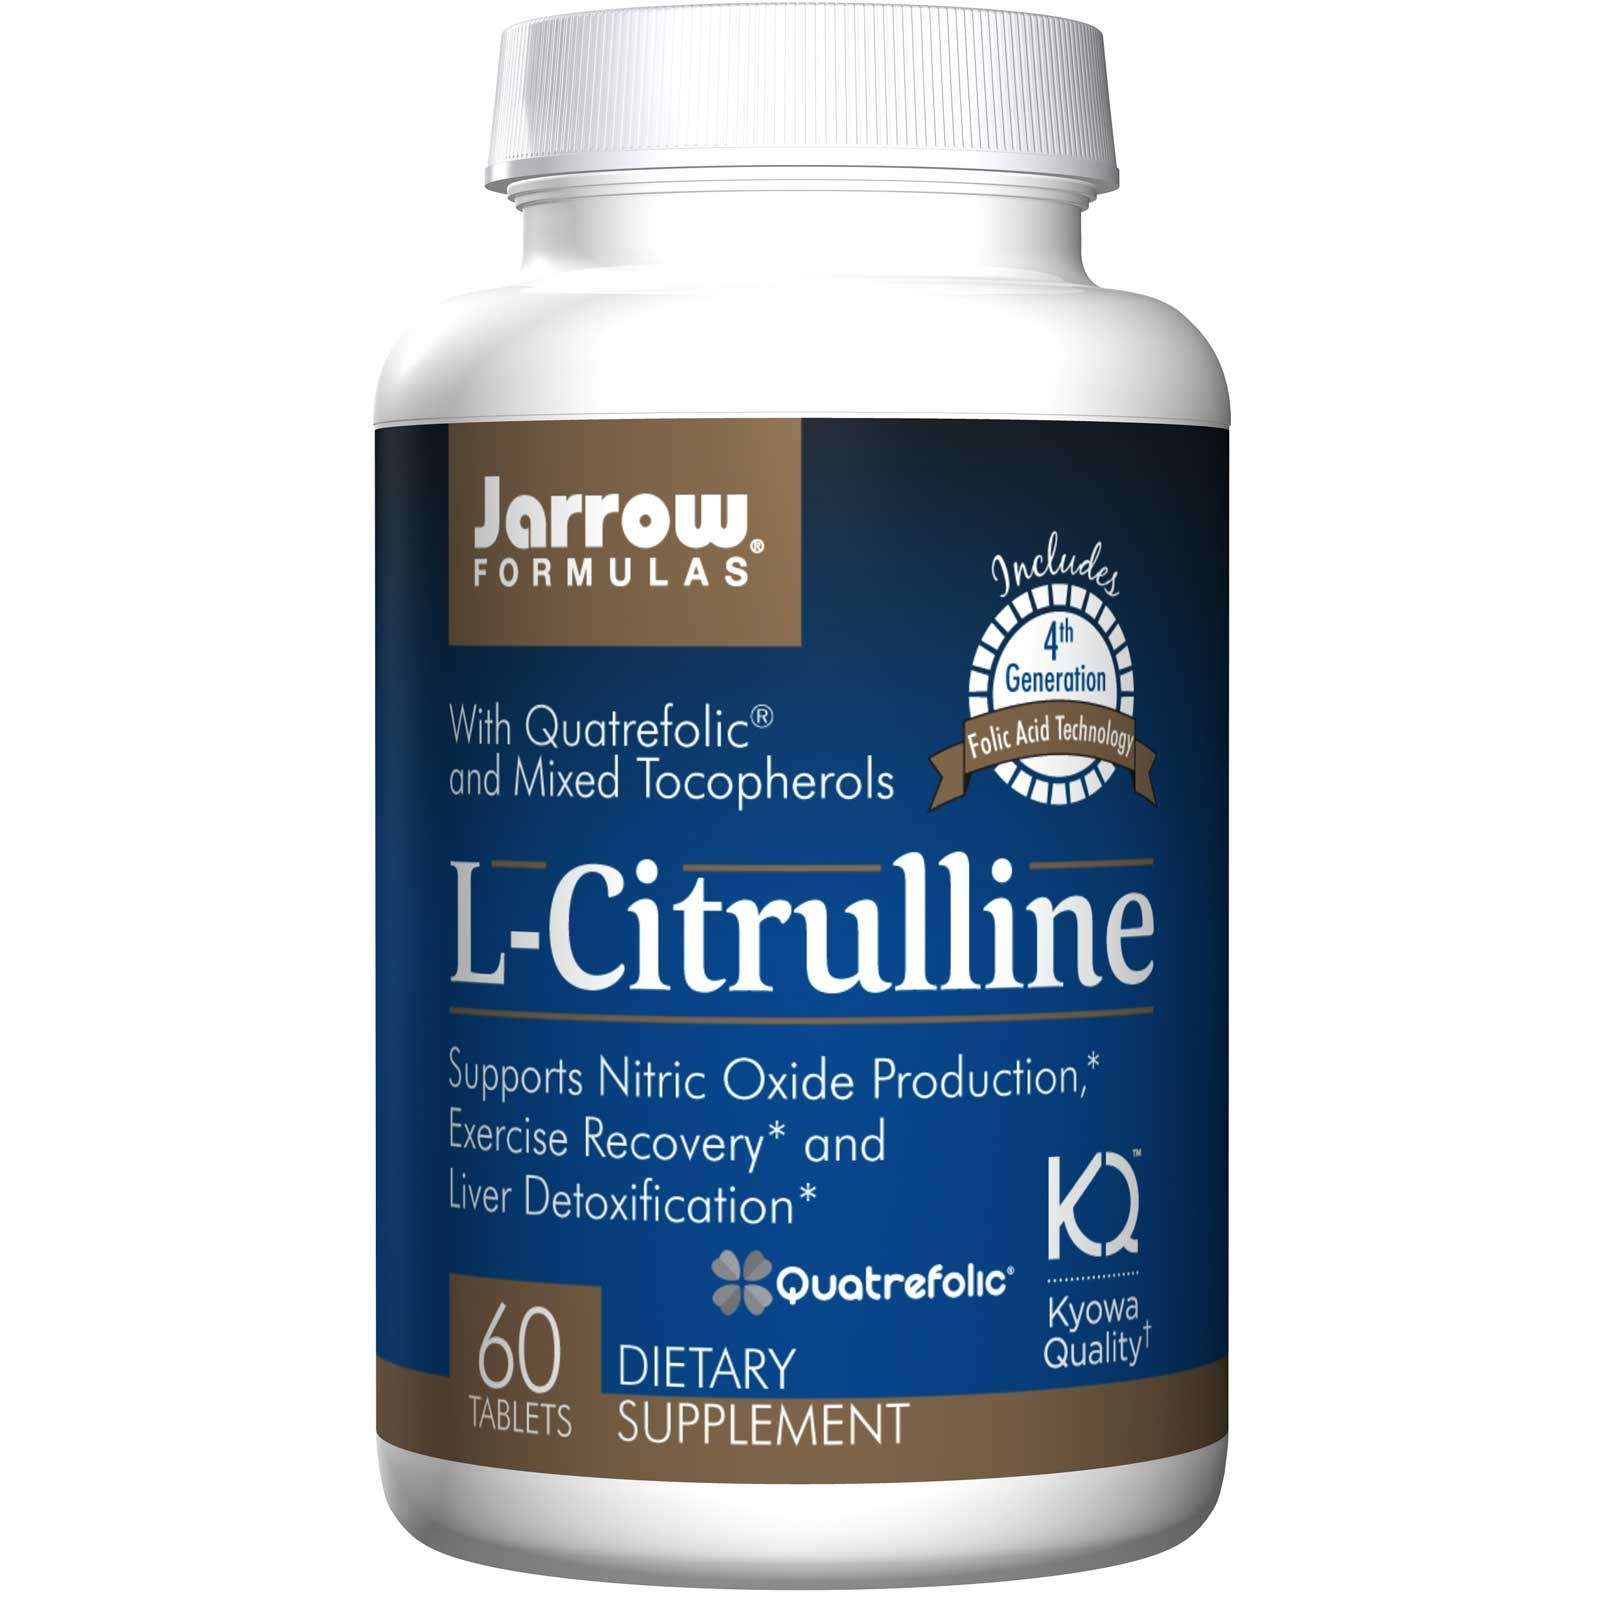 L Citrulline dosage bodybuilding